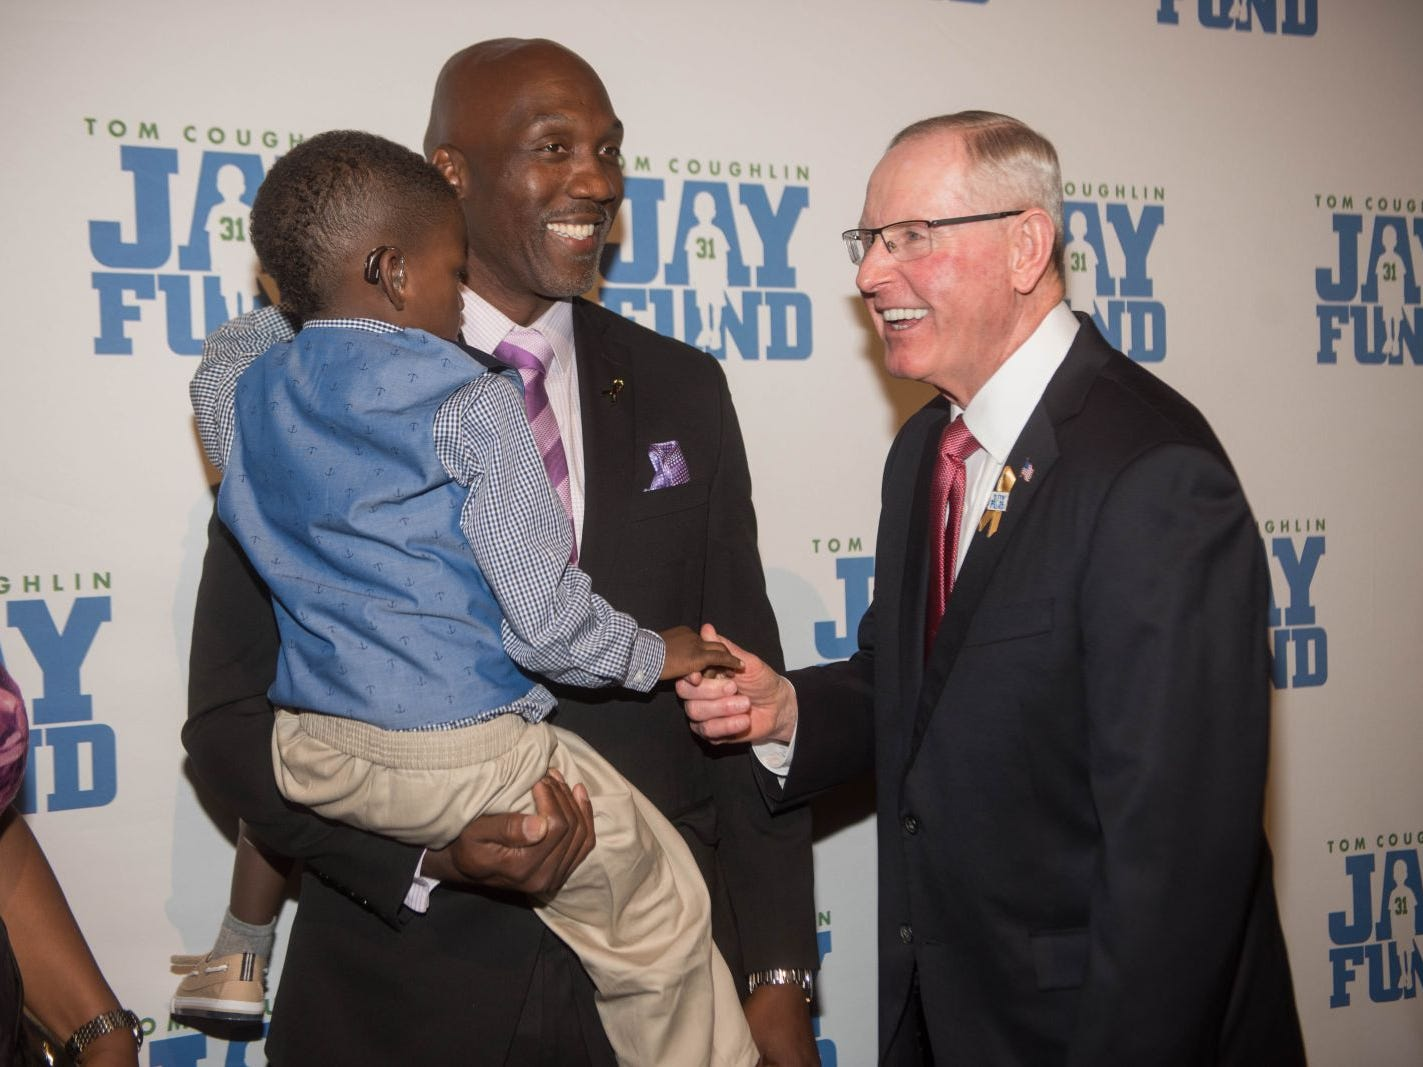 Cameron, Reggie Davis and Tom Coughlin. The 14th annual Jay Fund Champions for Children Gala was held at Cipriani 42nd Street. 09/21/2018